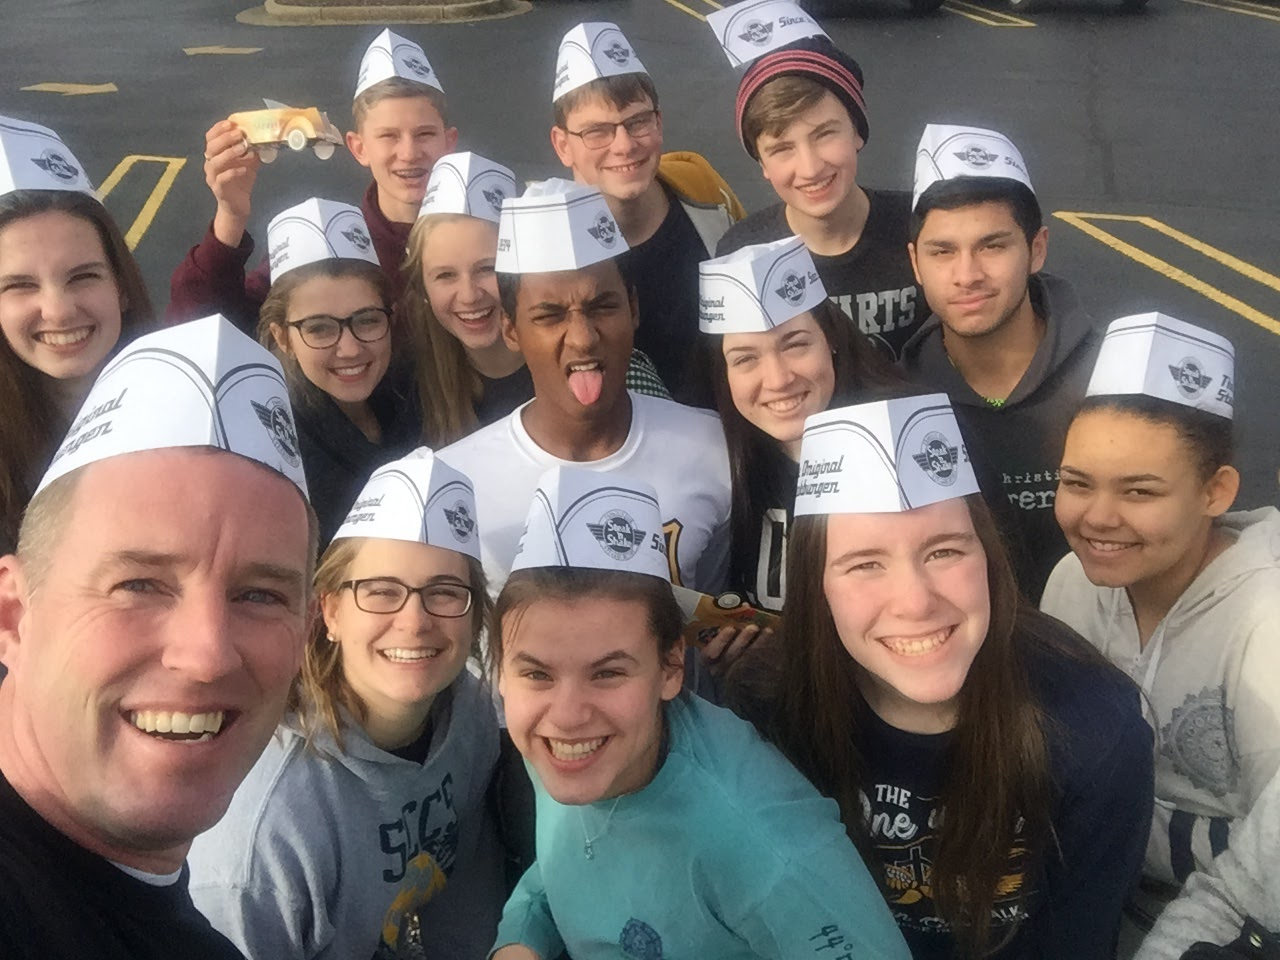 The week stared out early for this team  of students and teachers  who traveled to Atlanta to serve at  Seven Bridges Mission. They spent their week ministering to the homeless bringing  food, clothing  and the love of God to  where the these people live such as under highway bridges and in abandoned buildings .